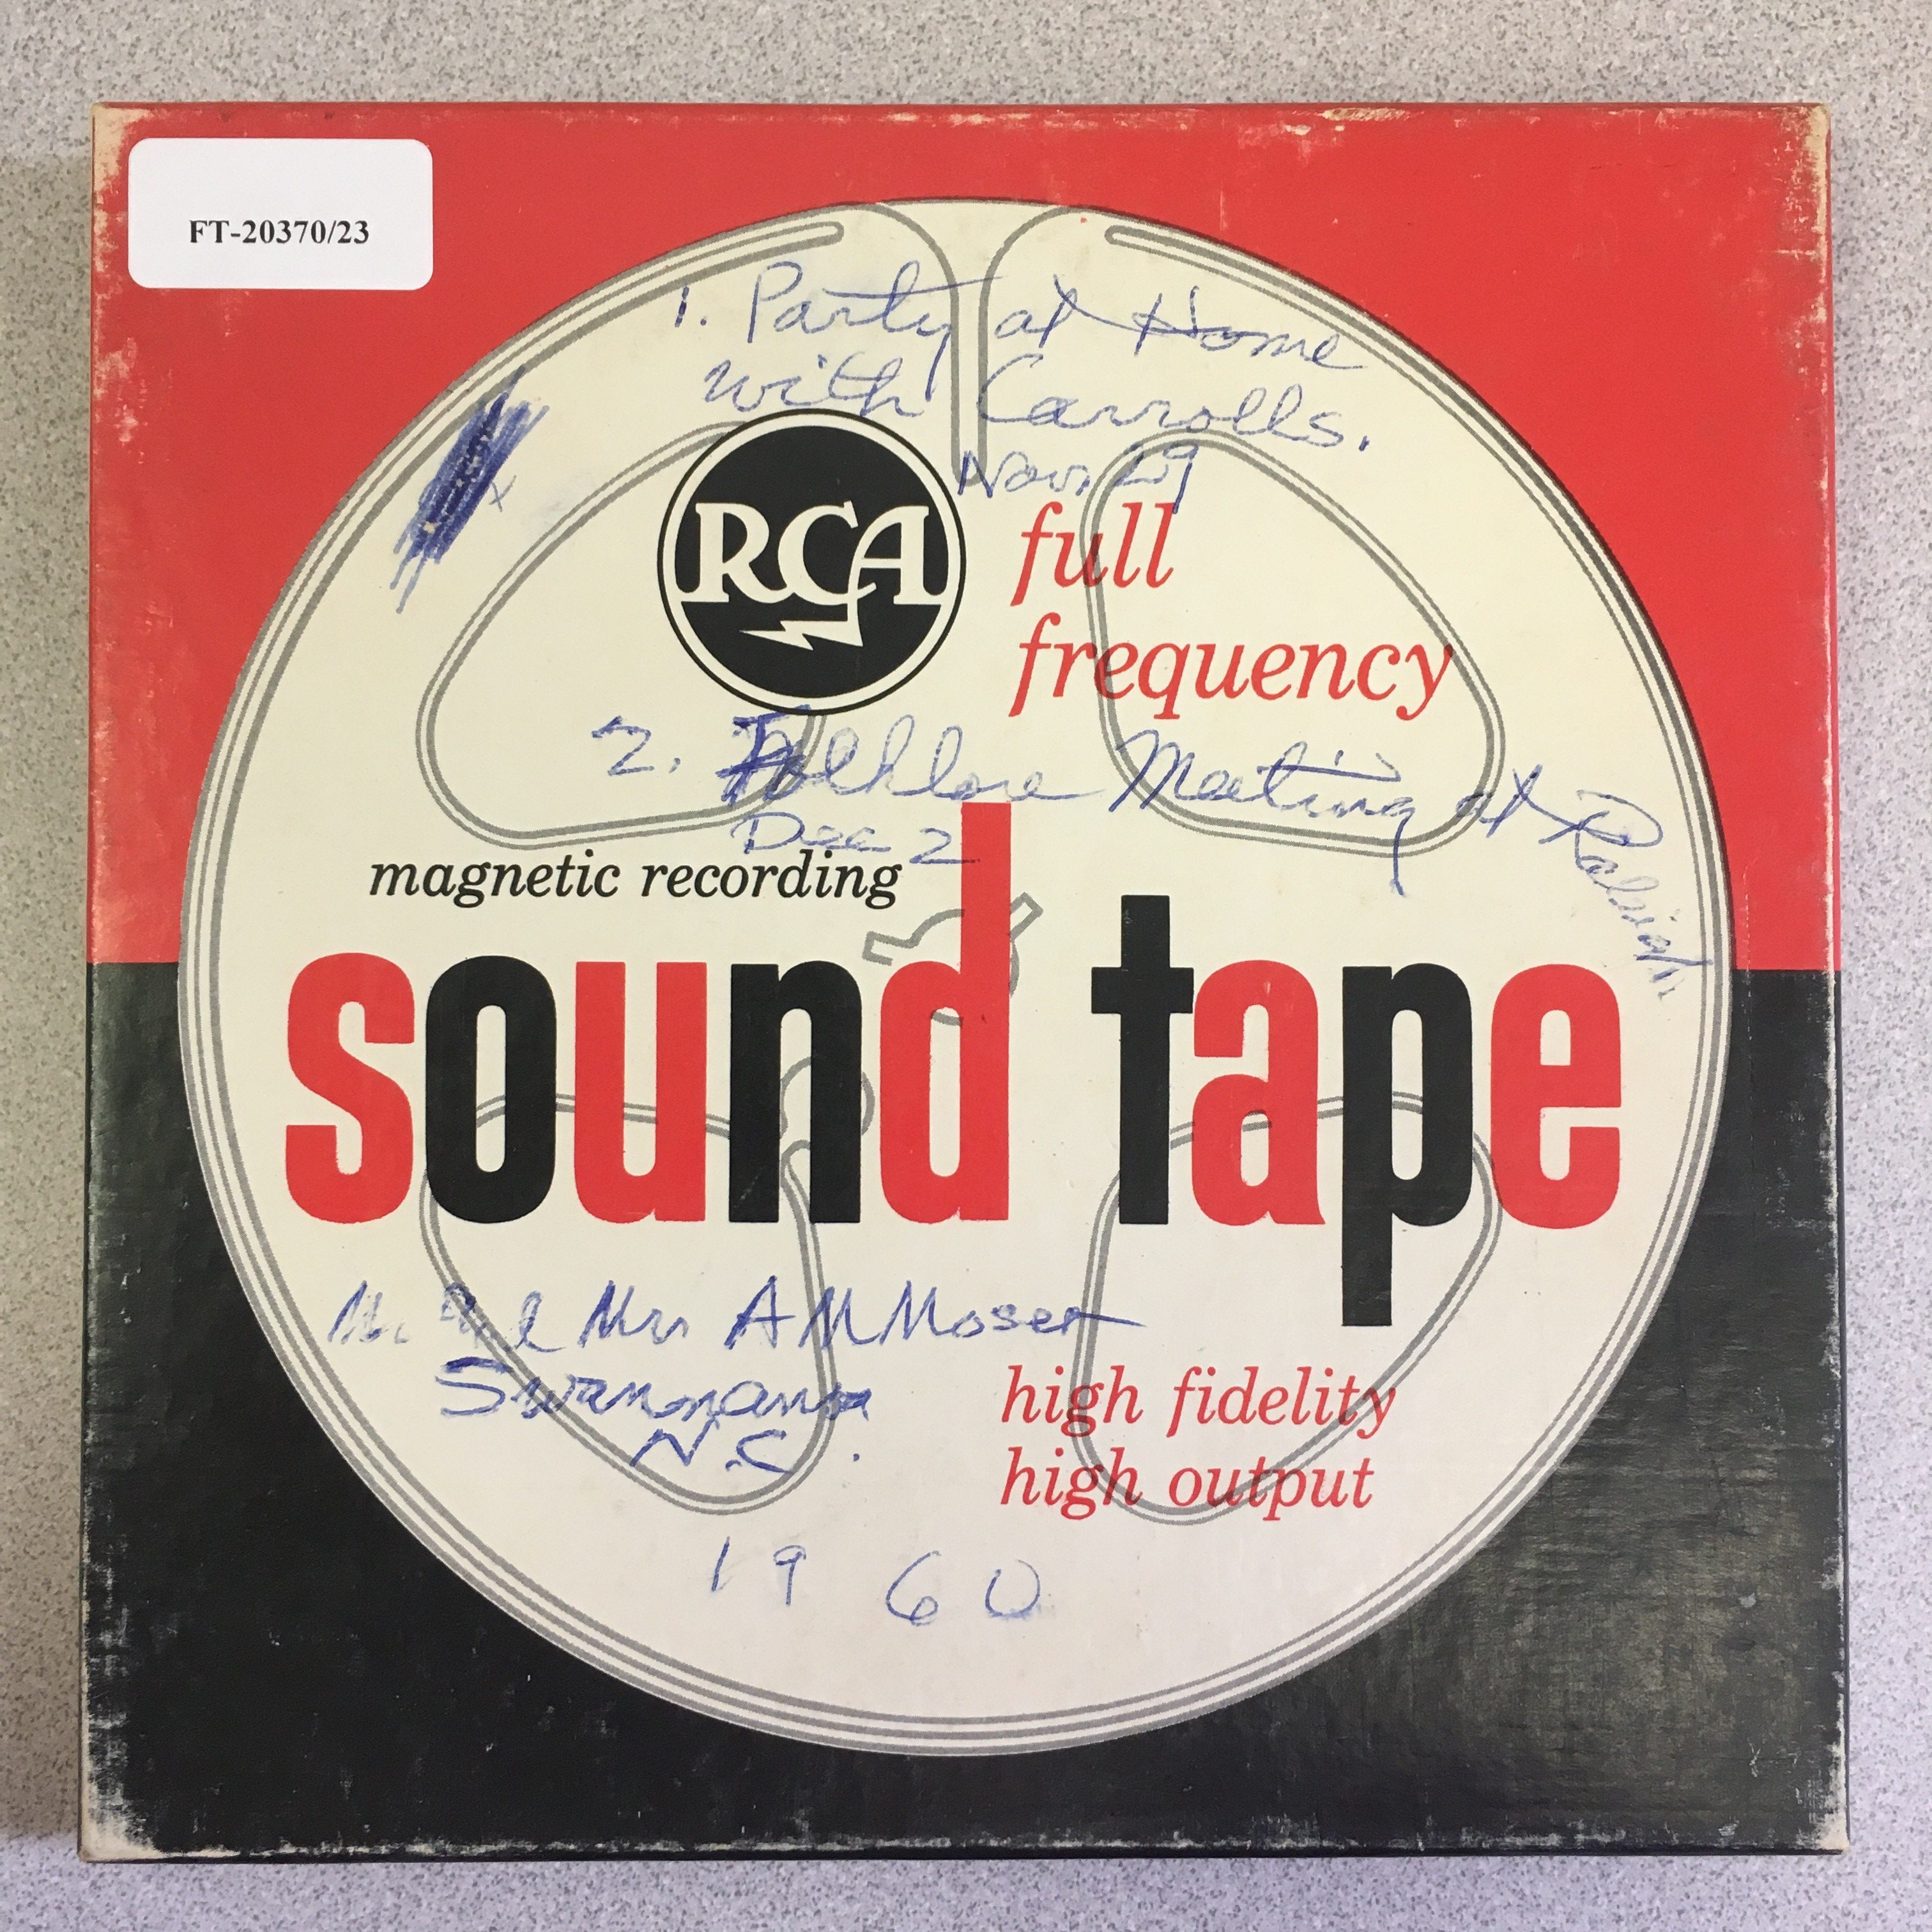 open reel tape box from Joan Moser Collection